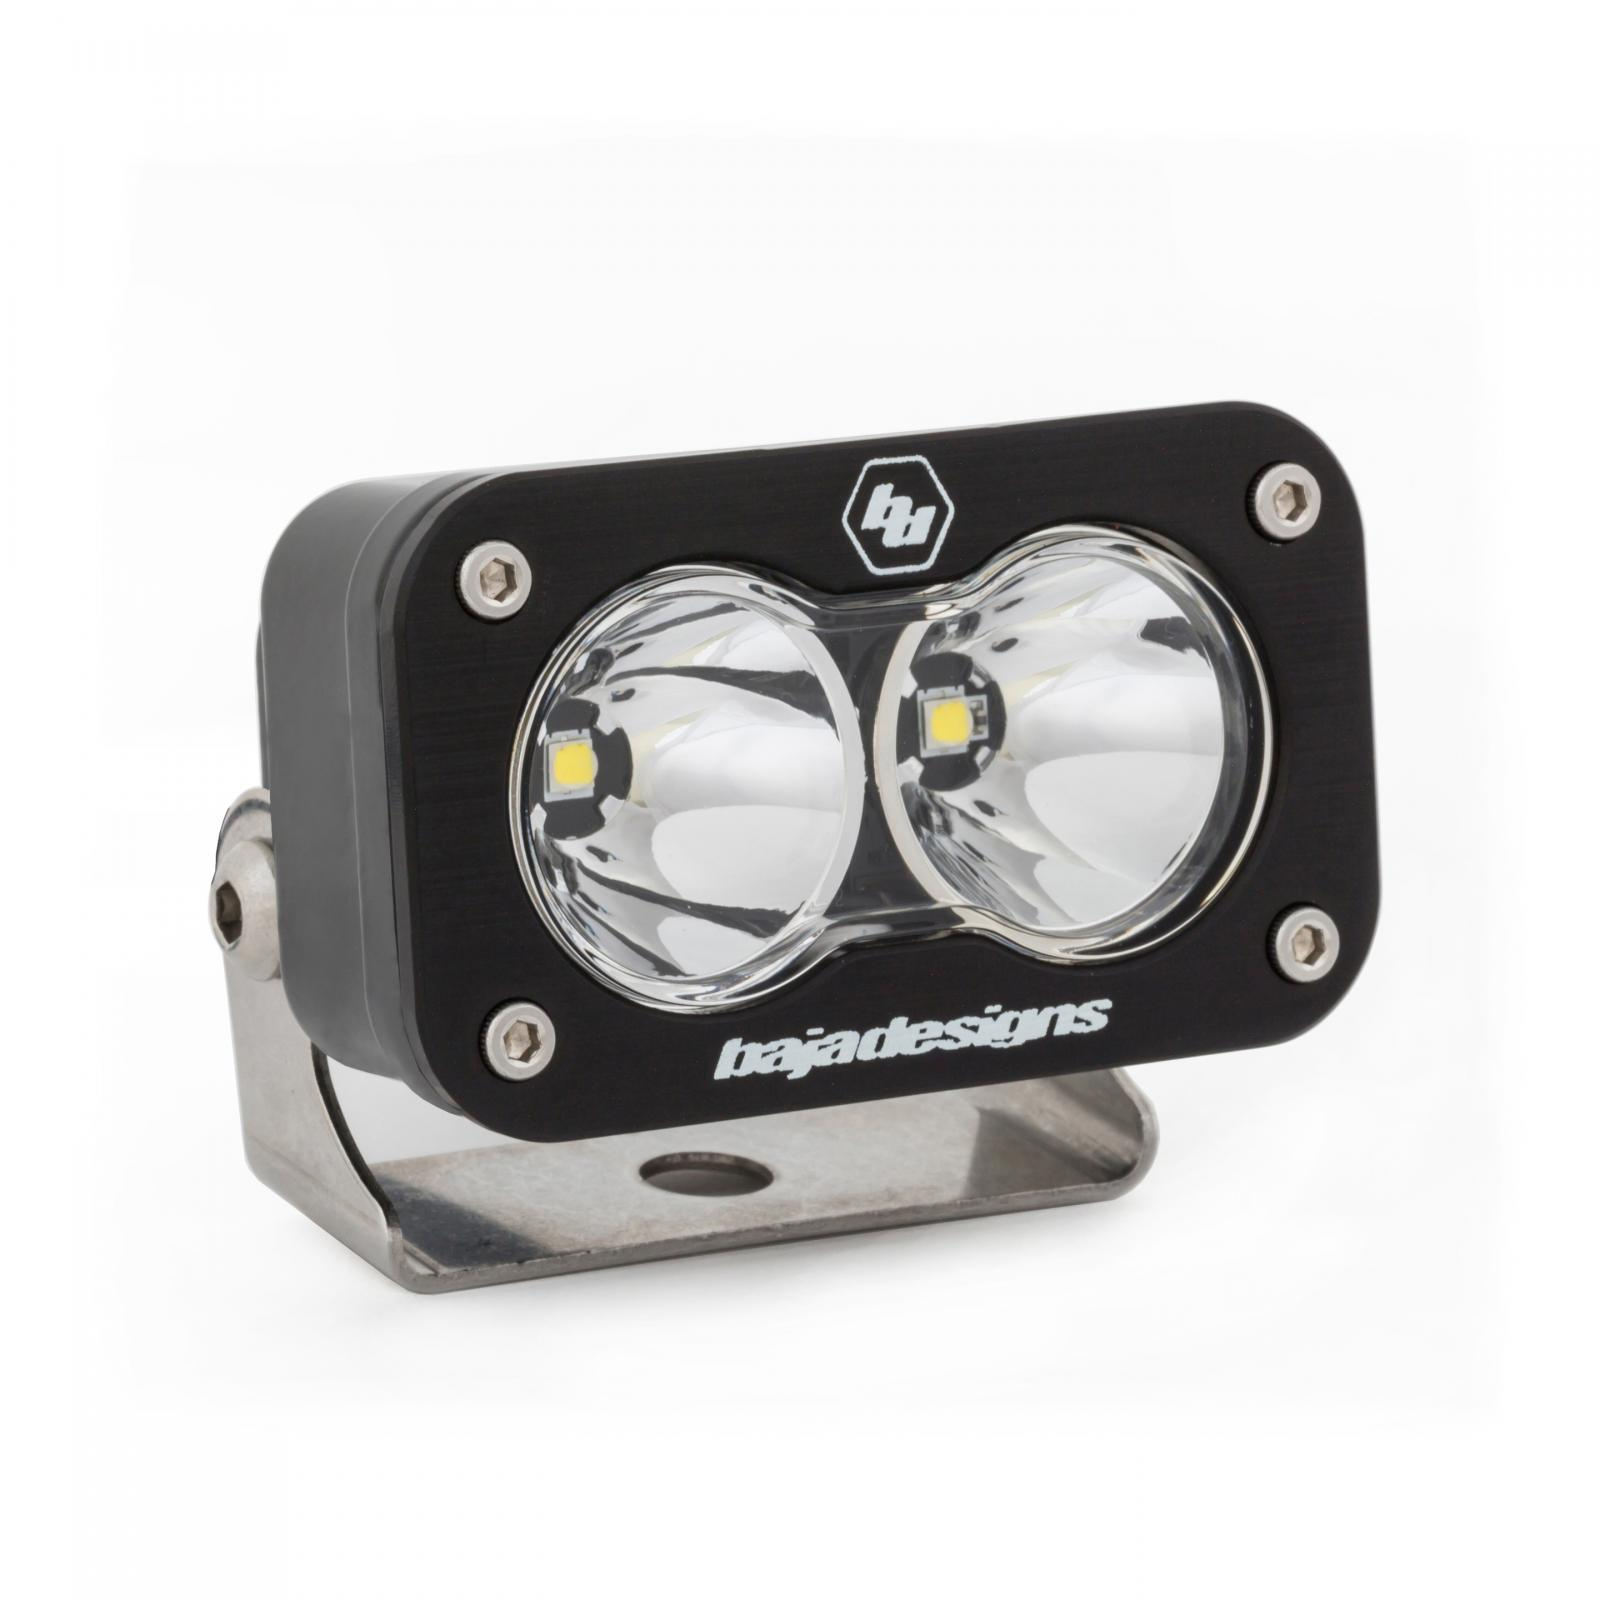 LED Work Light Clear Lens Work/Scene Pattern Each S2 Sport Baja Designs